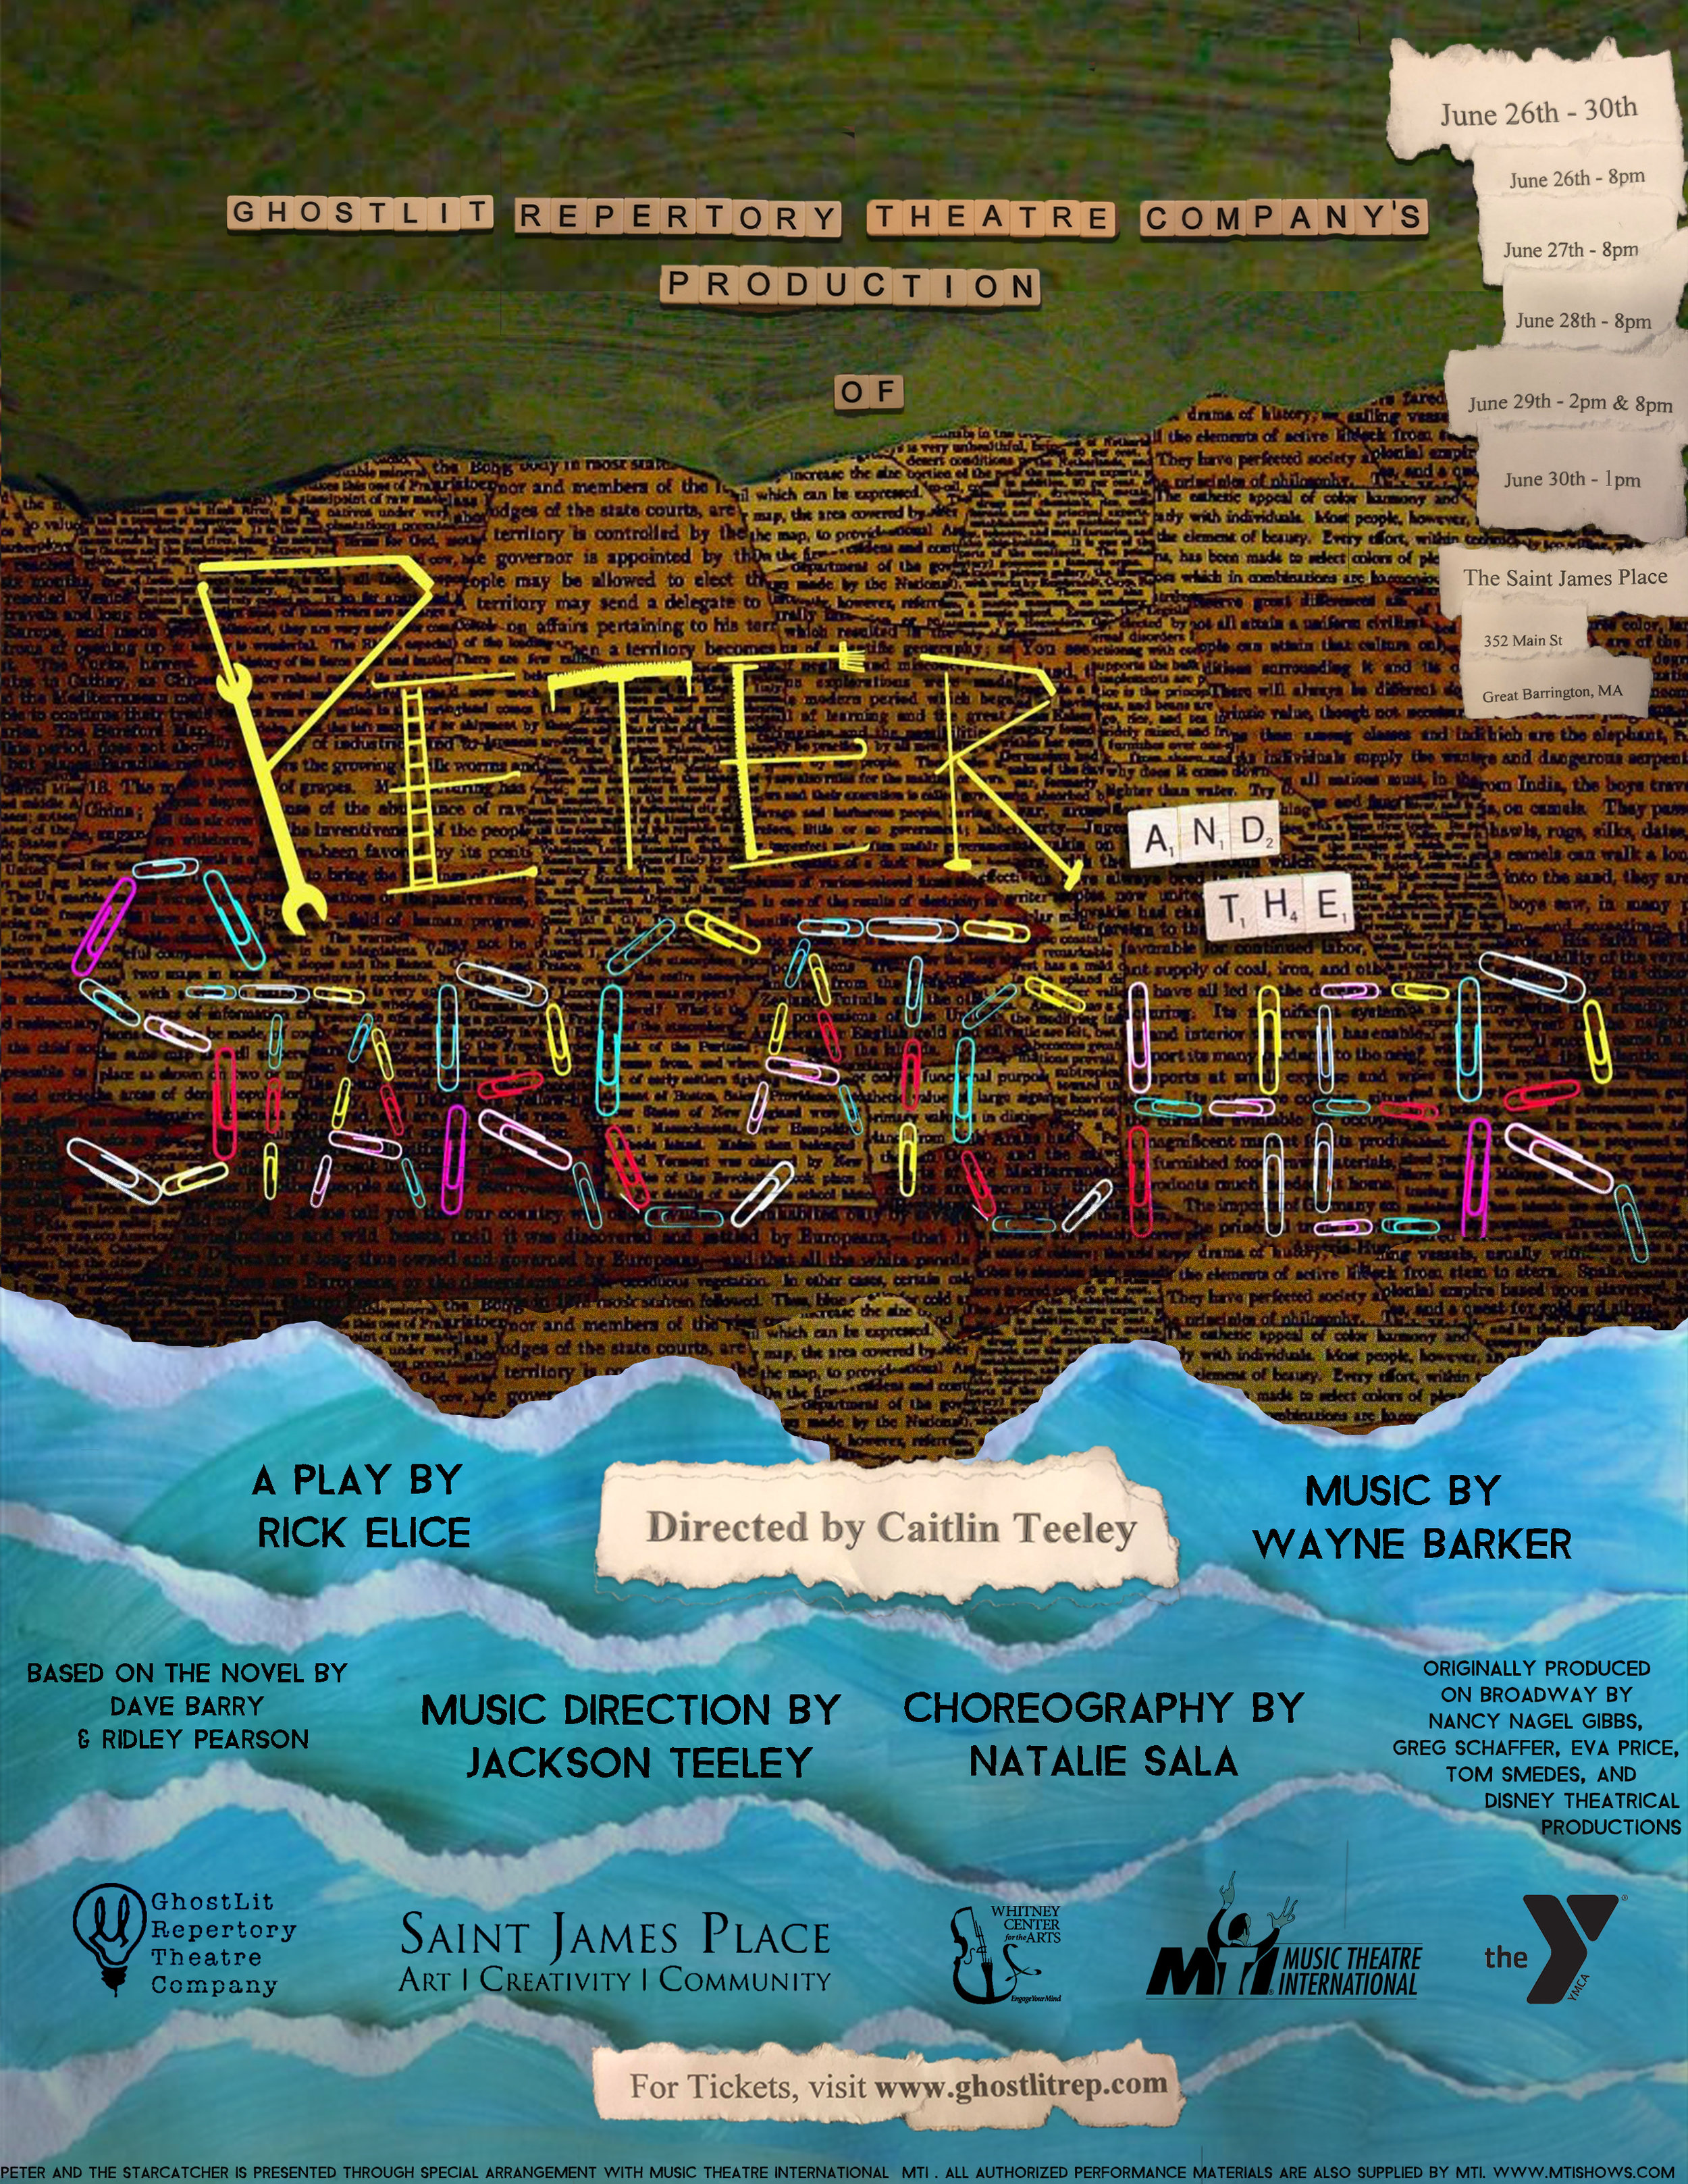 Peter and the Starcatcher - June 26- June 30St. James Place, Great Barrington, MA, 01230 United StatesBased on the book